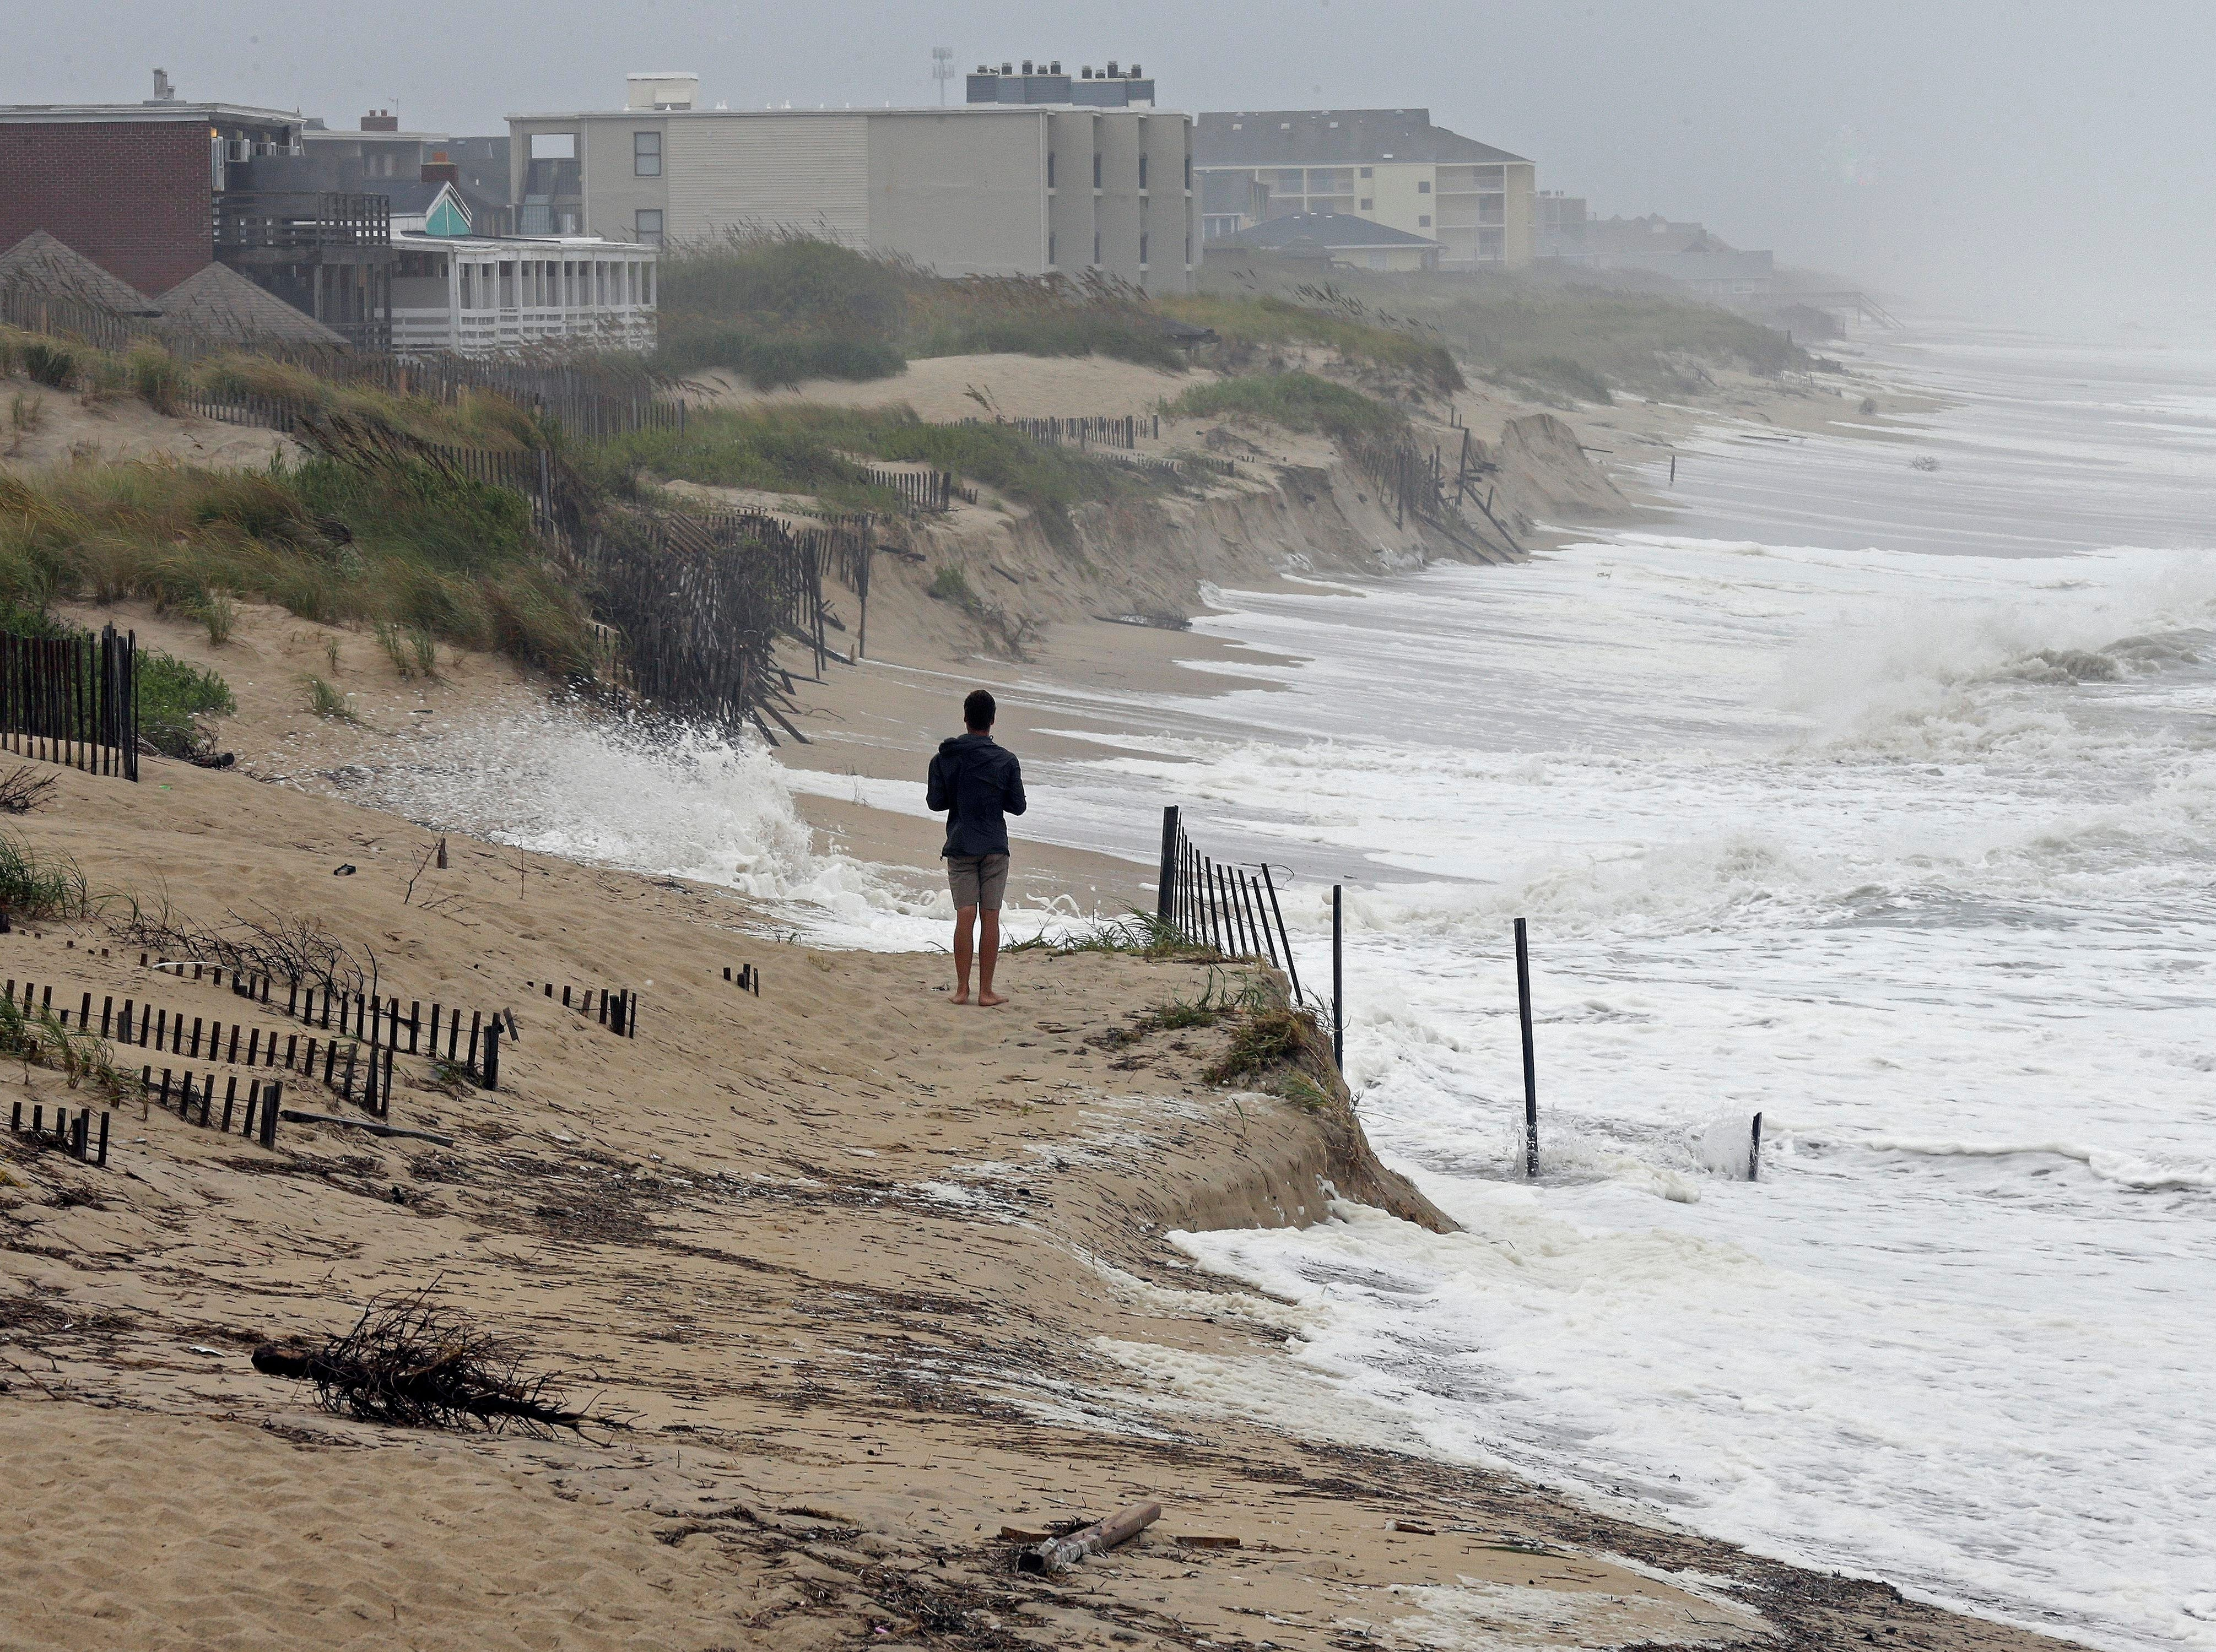 Heavy surf crashes the dunes at high tide in Nags Head, N.C., Thursday, Sept. 13, 2018 as Hurricane Florence approaches the east coast. (AP Photo/Gerry Broome)